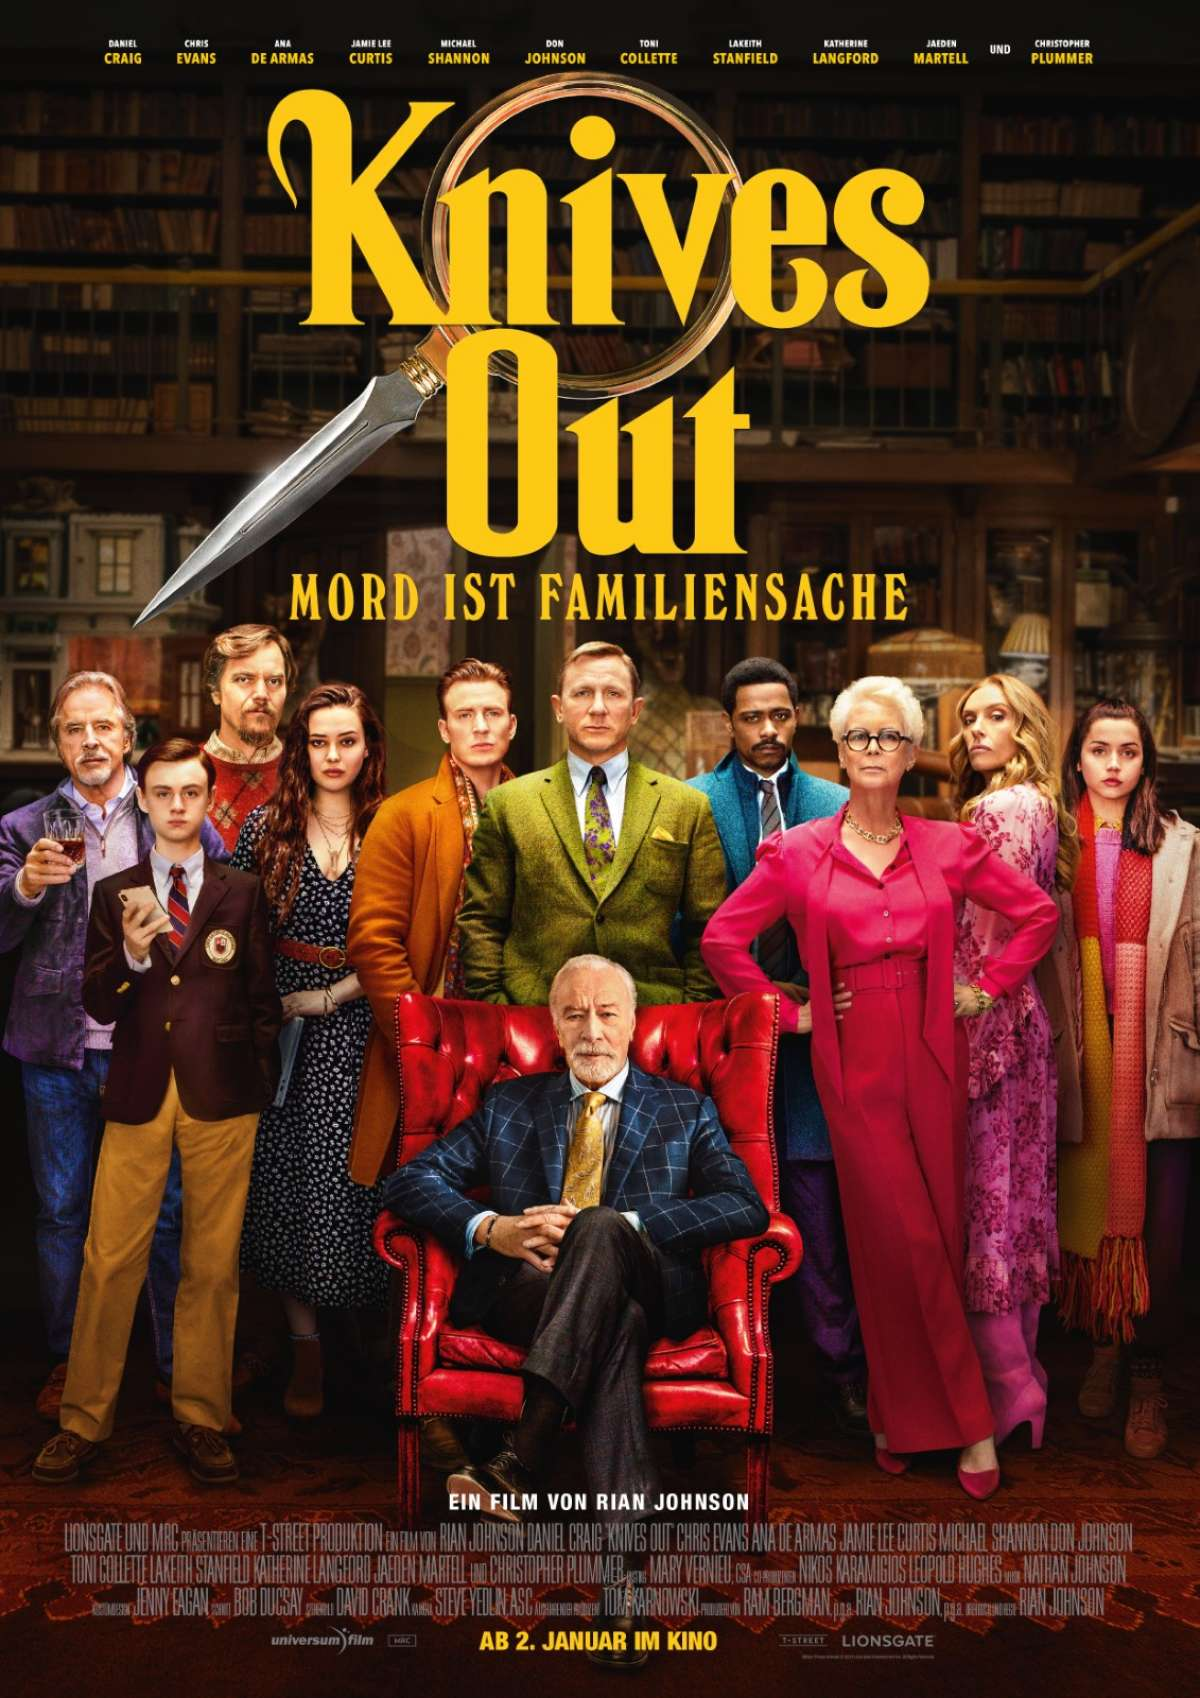 Knives Out - Mord ist Familiensache - Cineplex  - Lippstadt